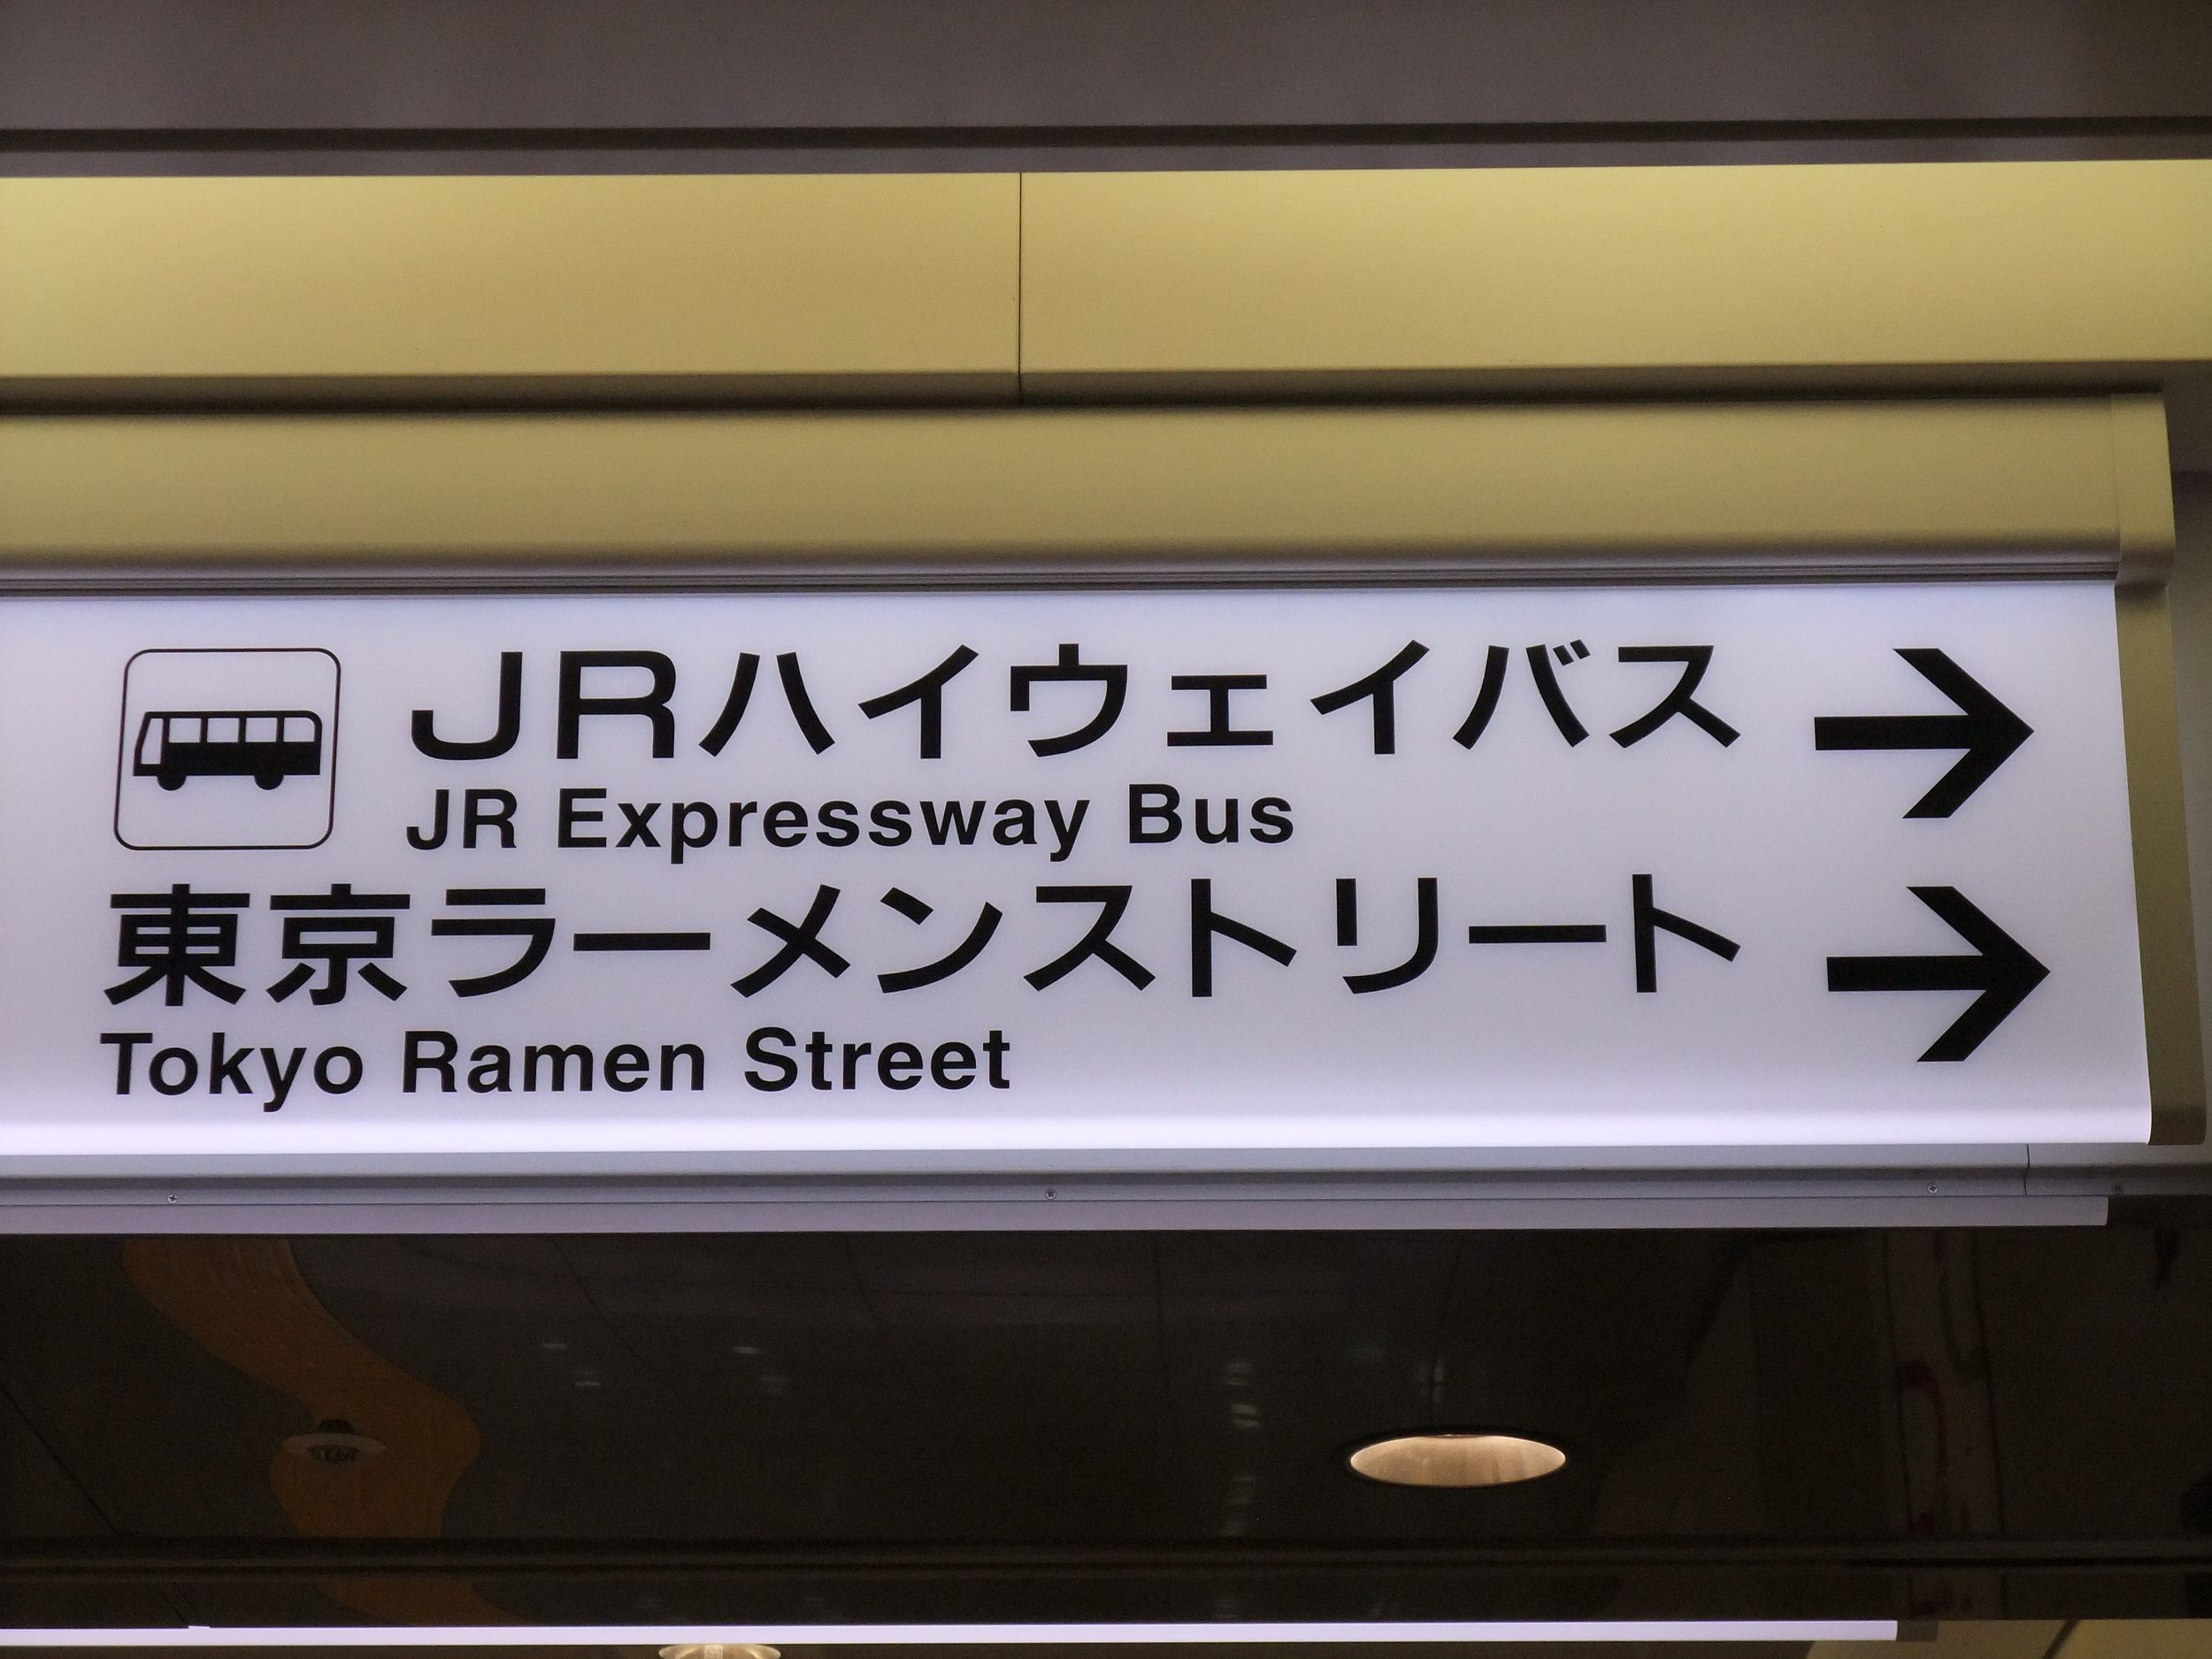 Most signs are conveniently in English as well as Japanese